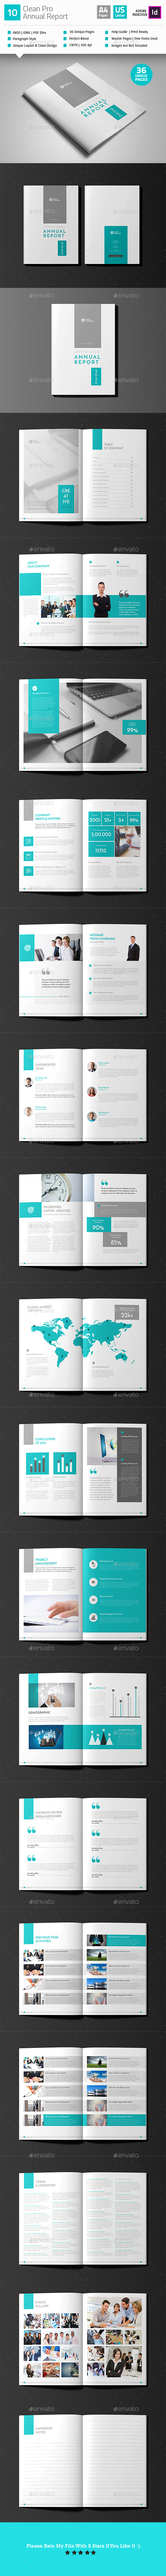 Clean Annual Report Brochure Template Indesign Indd  Brochure